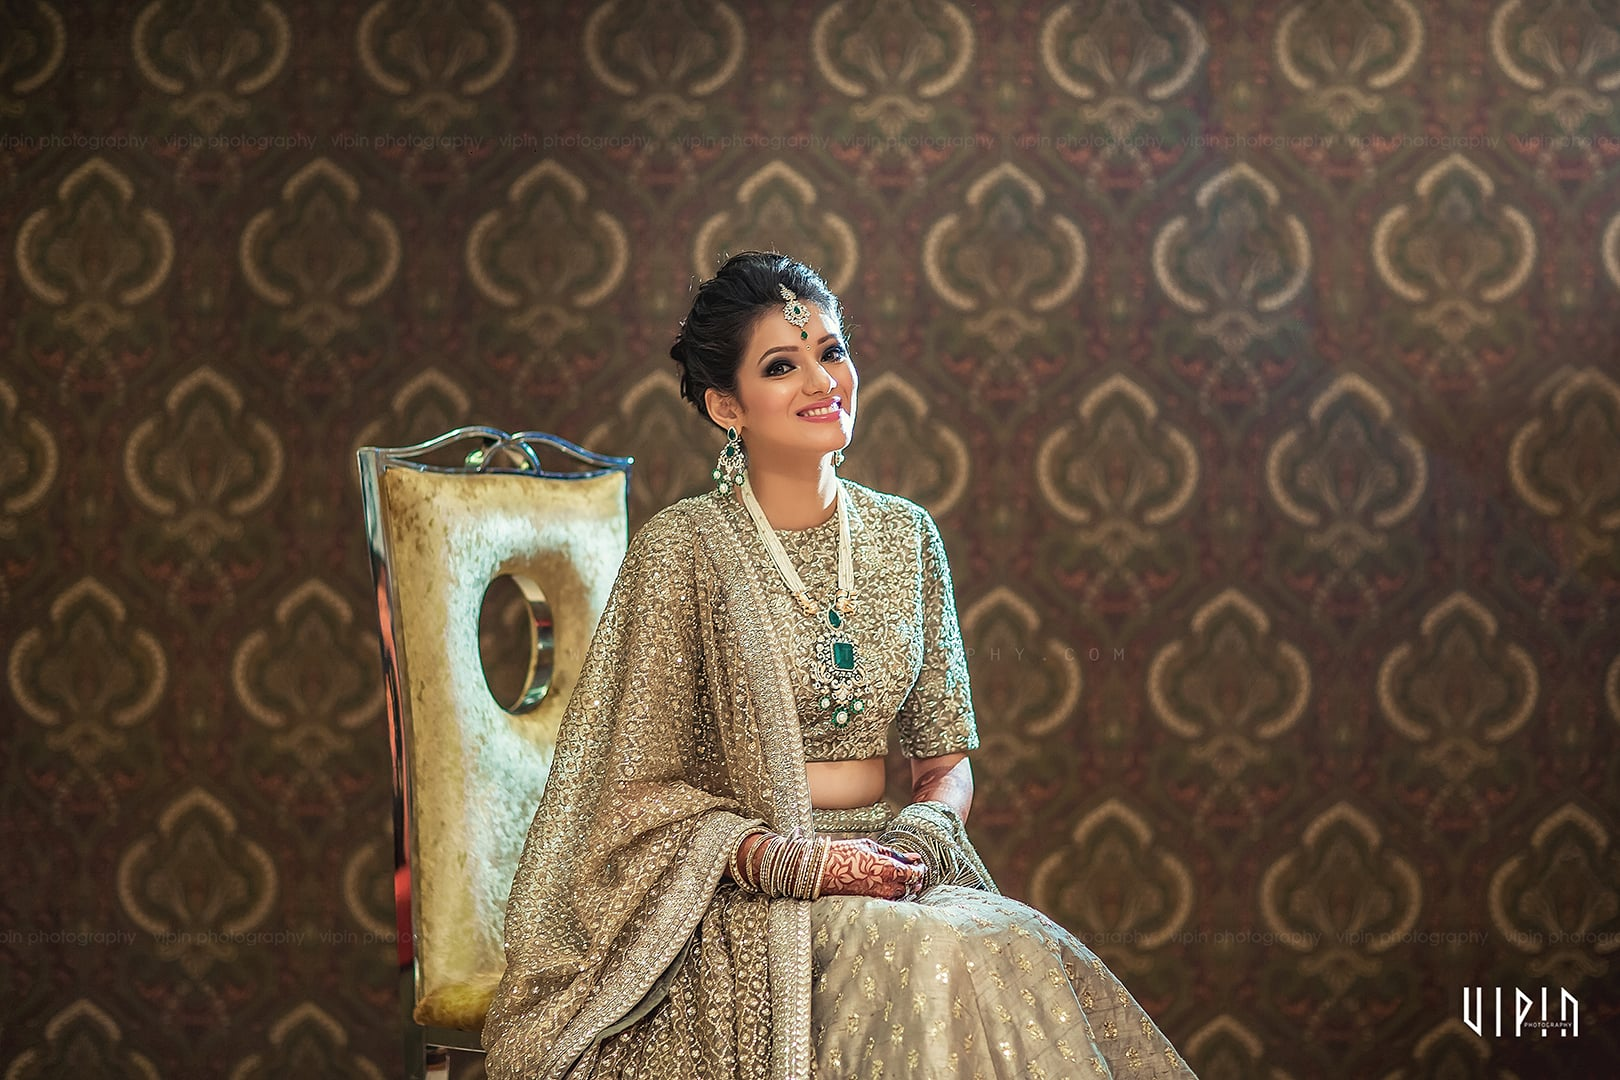 the bride!:vipin photography, bianca, sabyasachi couture pvt ltd